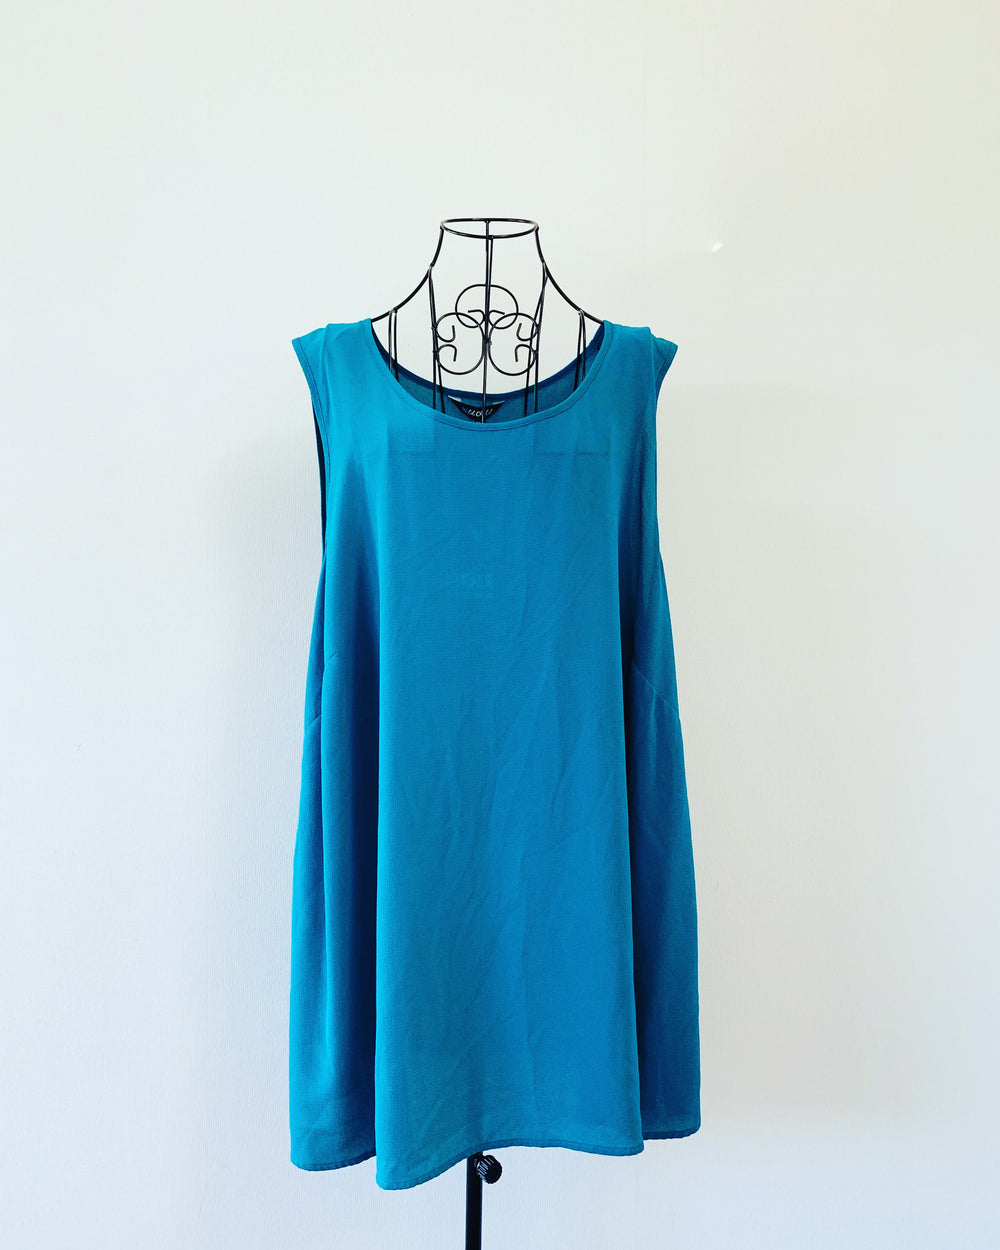 New // WILD CHILD Teal-Coloured Sleeveless Top // Size 24